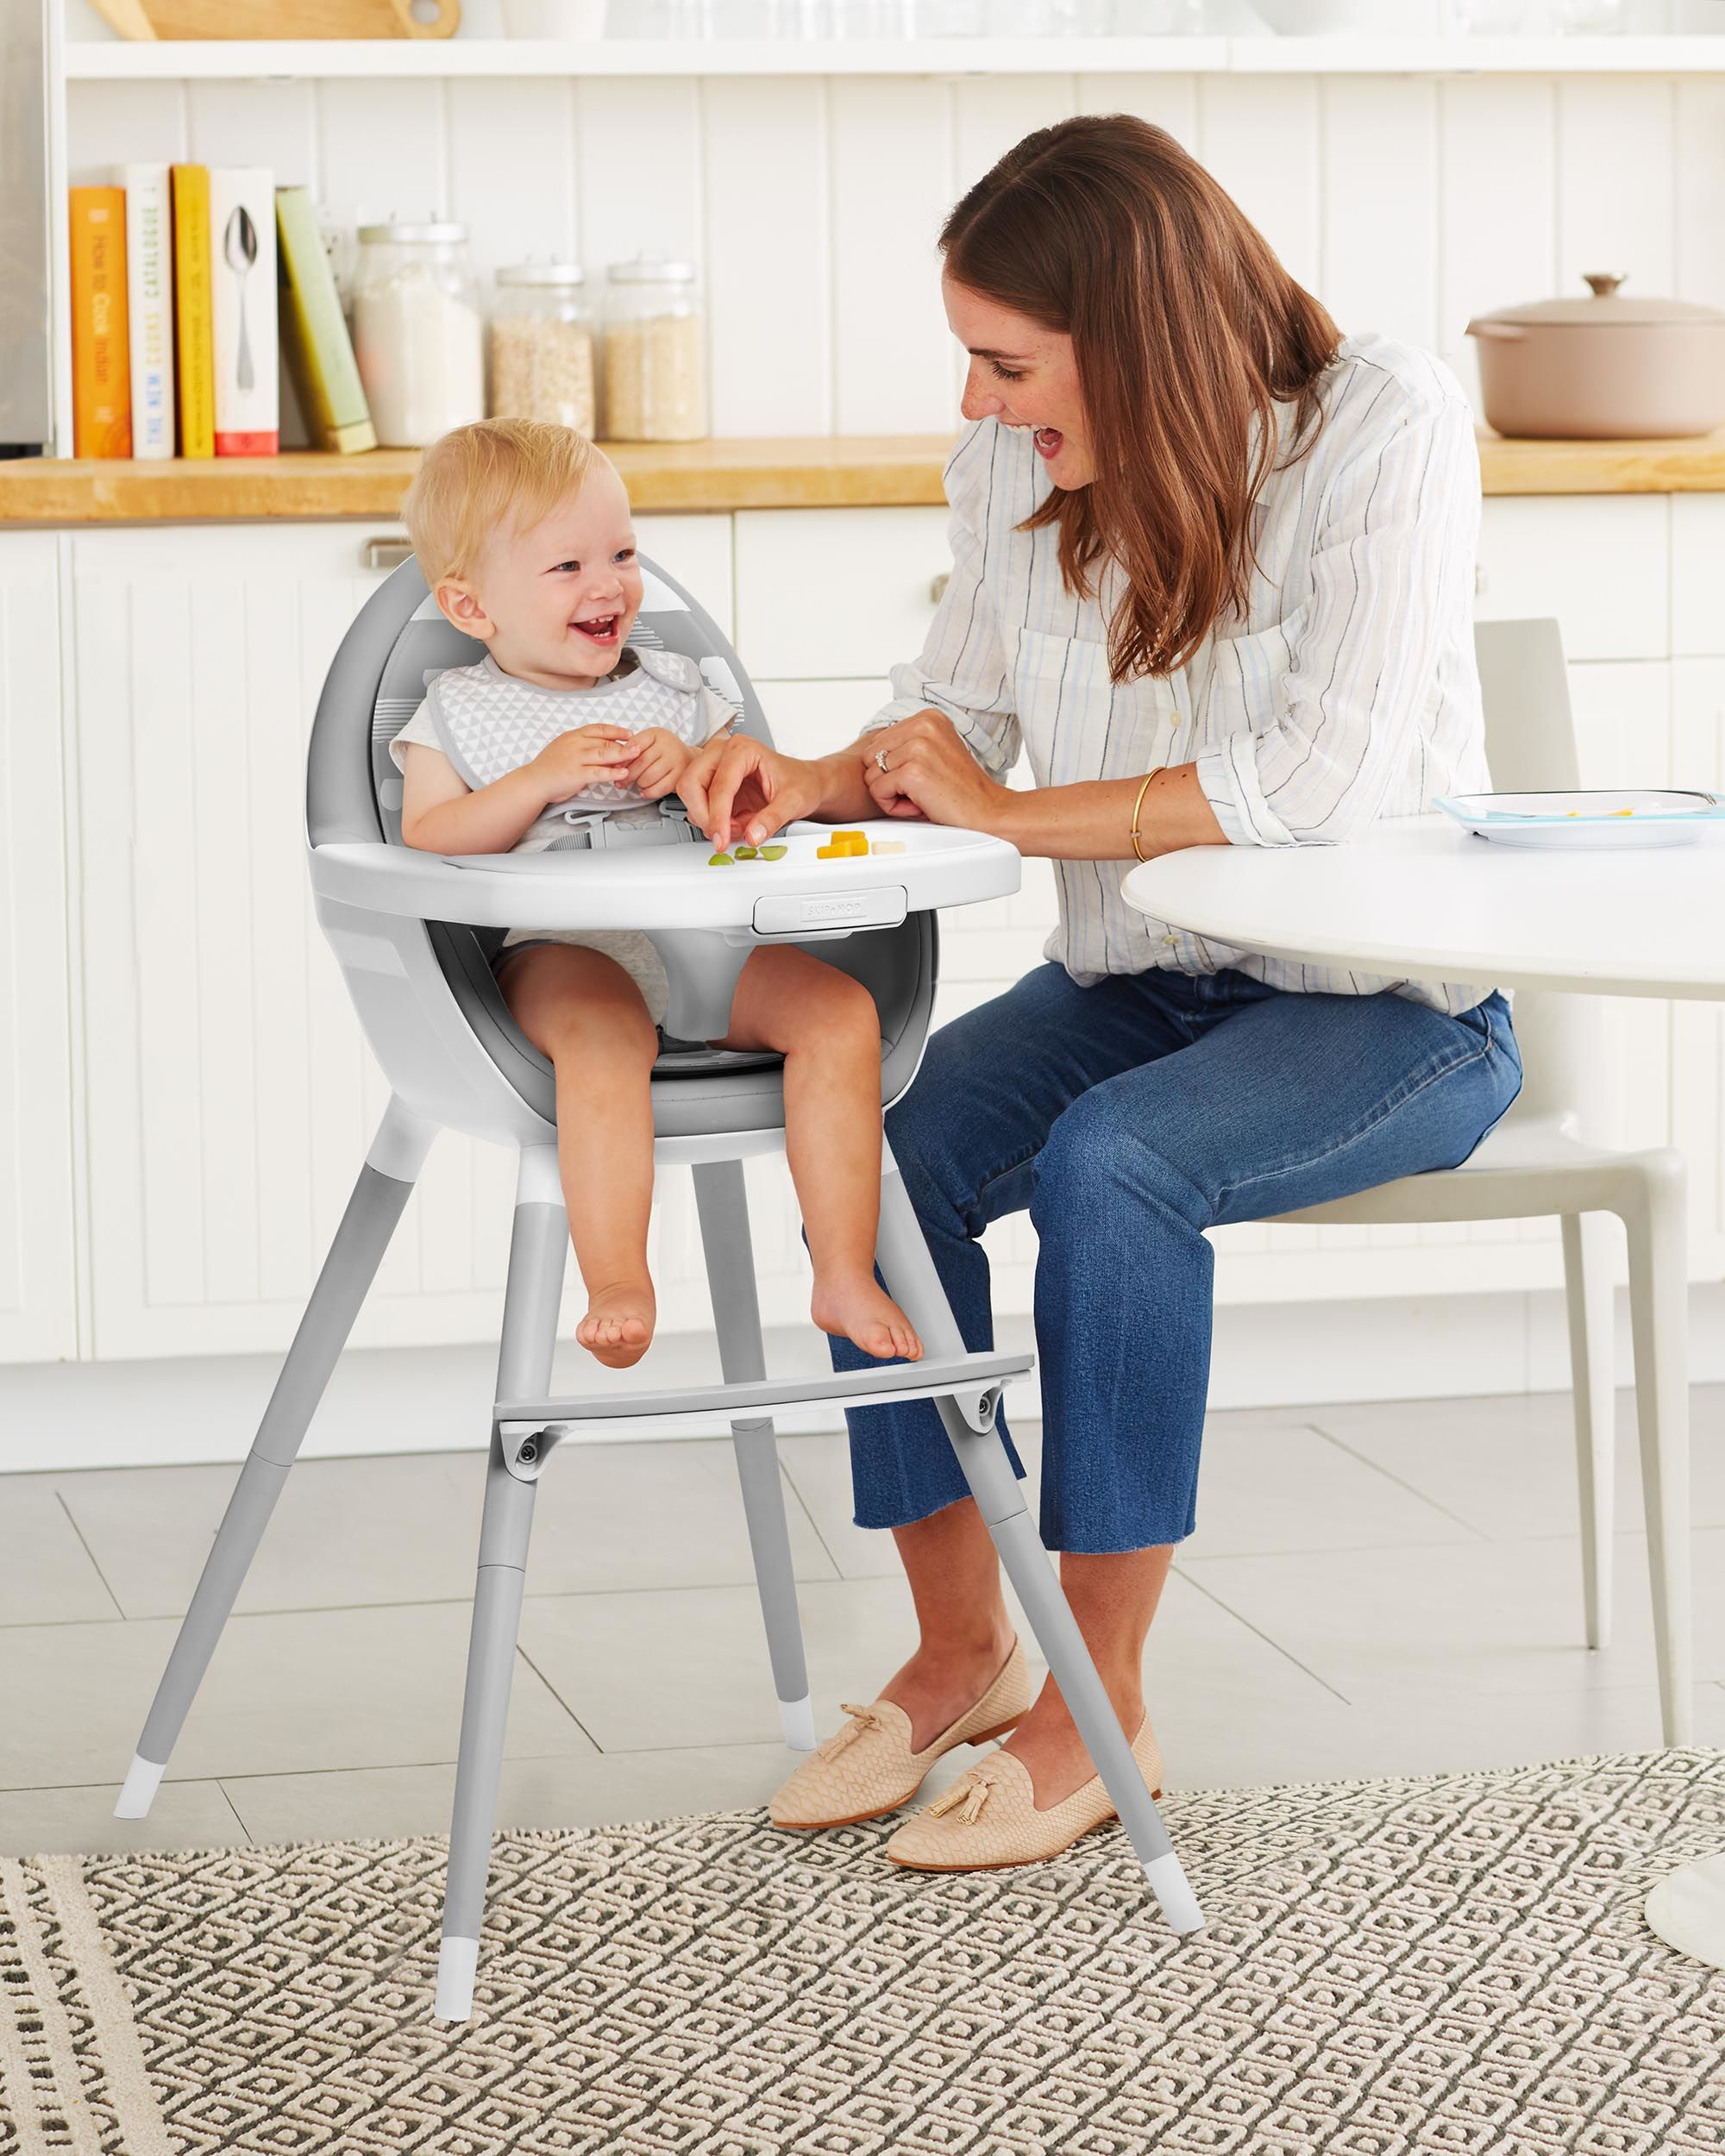 Skip Hop Tuo Convertible High Chair Convertible high